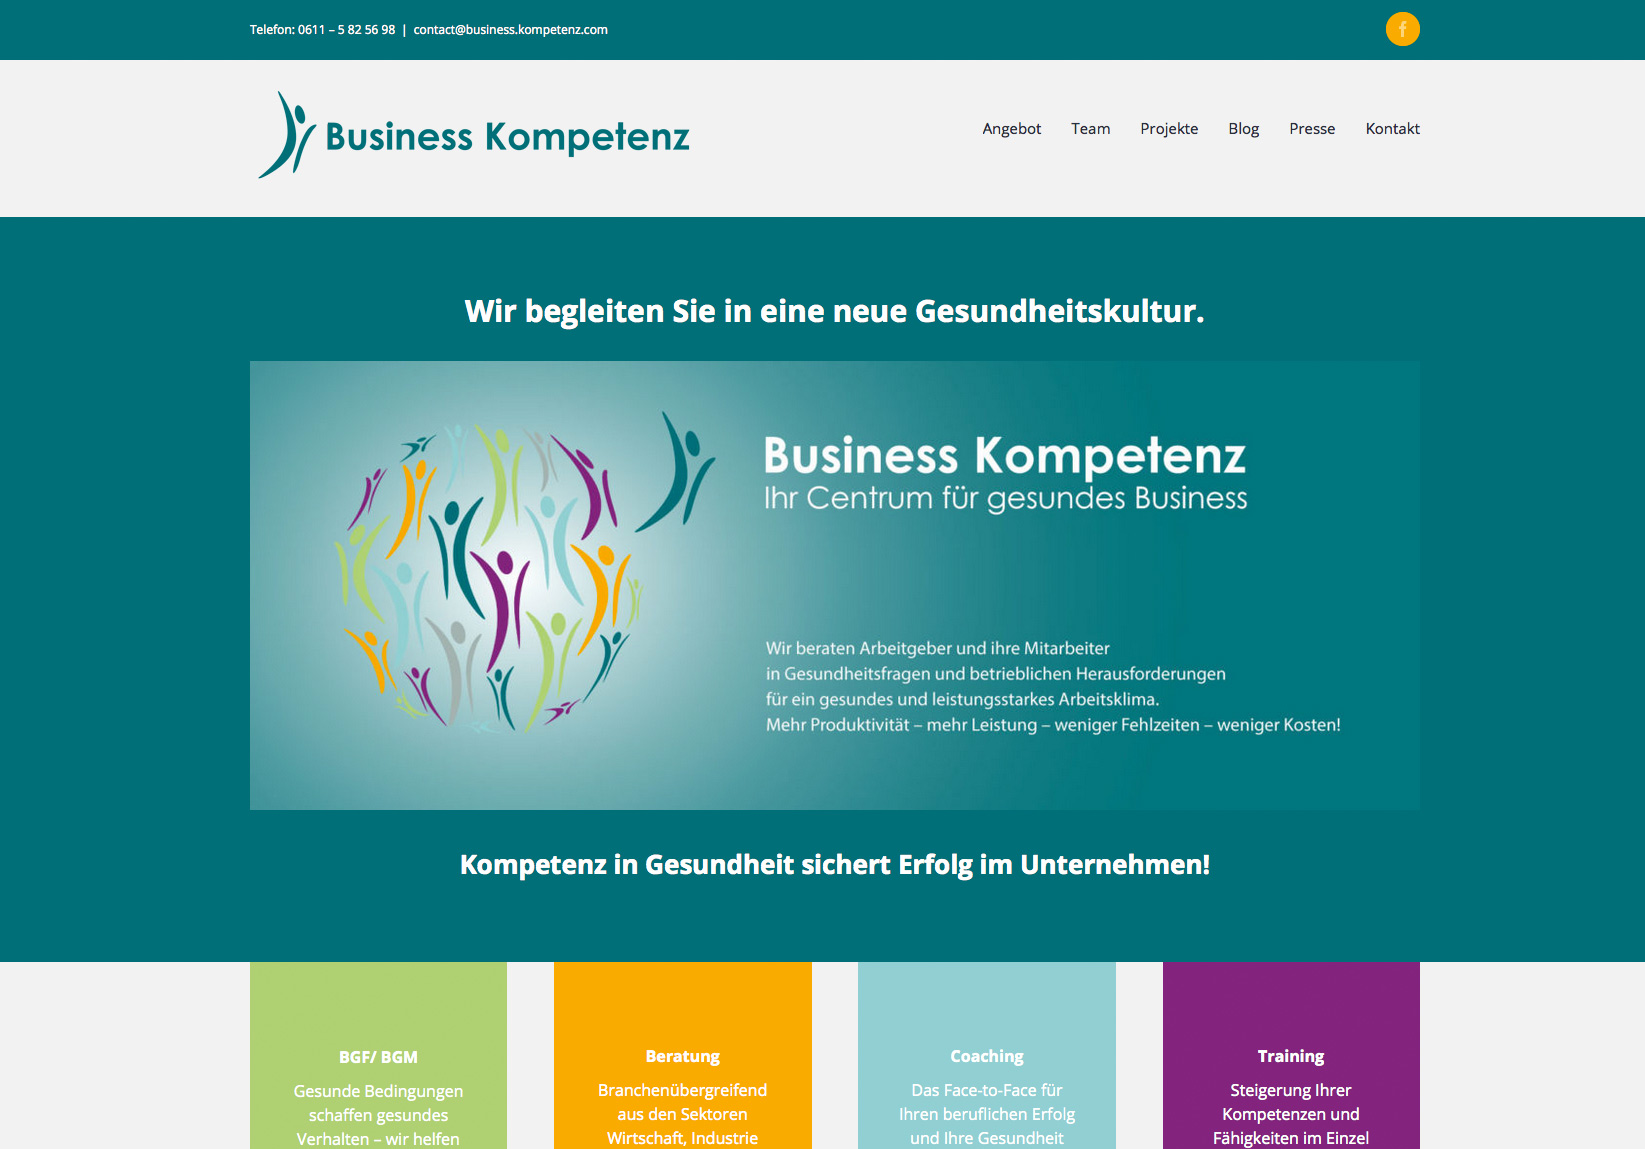 BusinessKompetenz